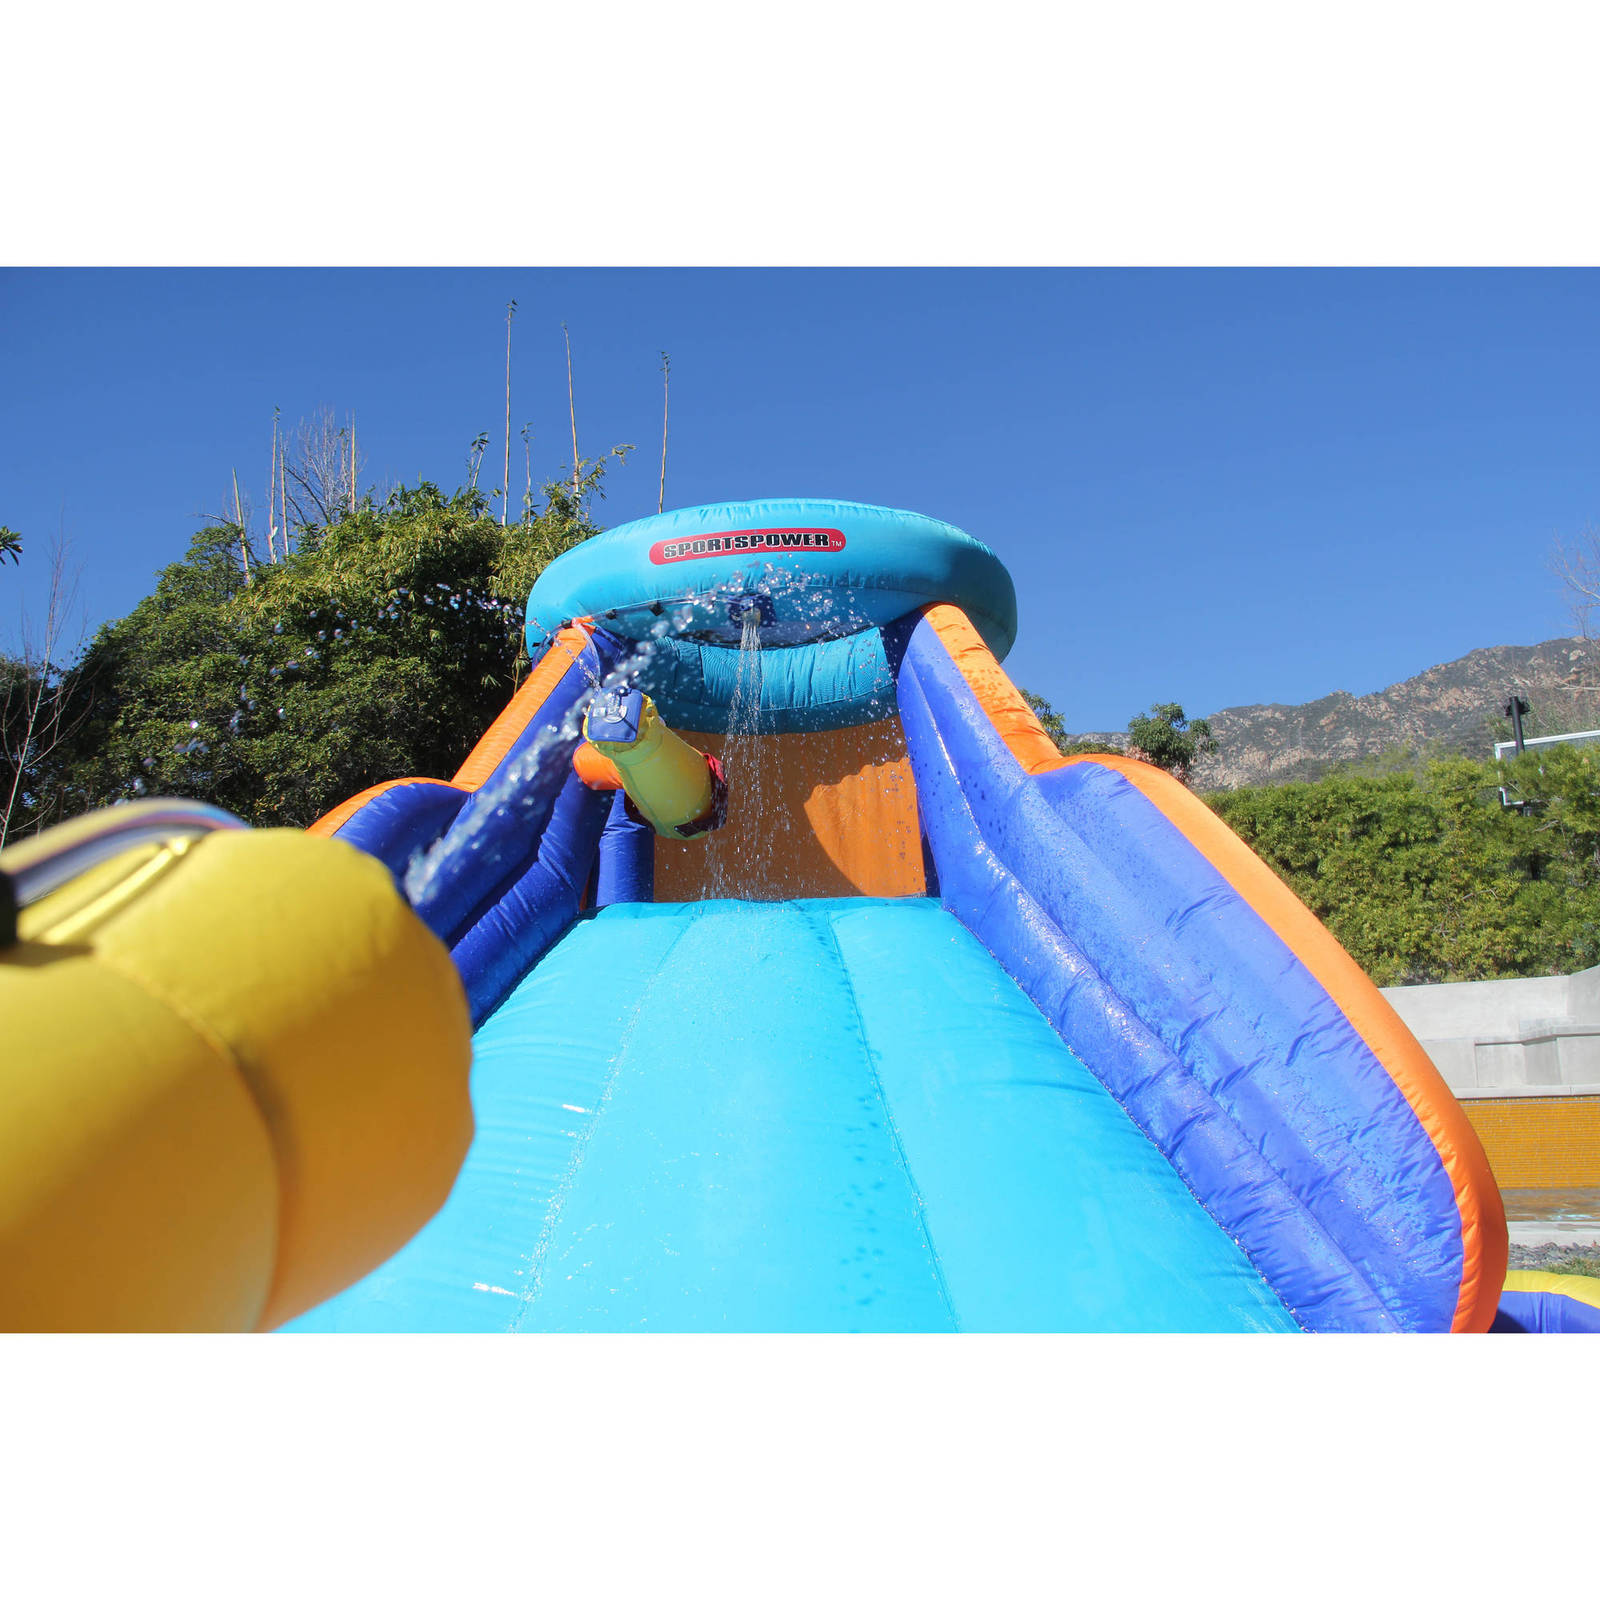 Inflatable Slide Splash: Inflatable Water Slide Splash Play Outdoor Party Climb